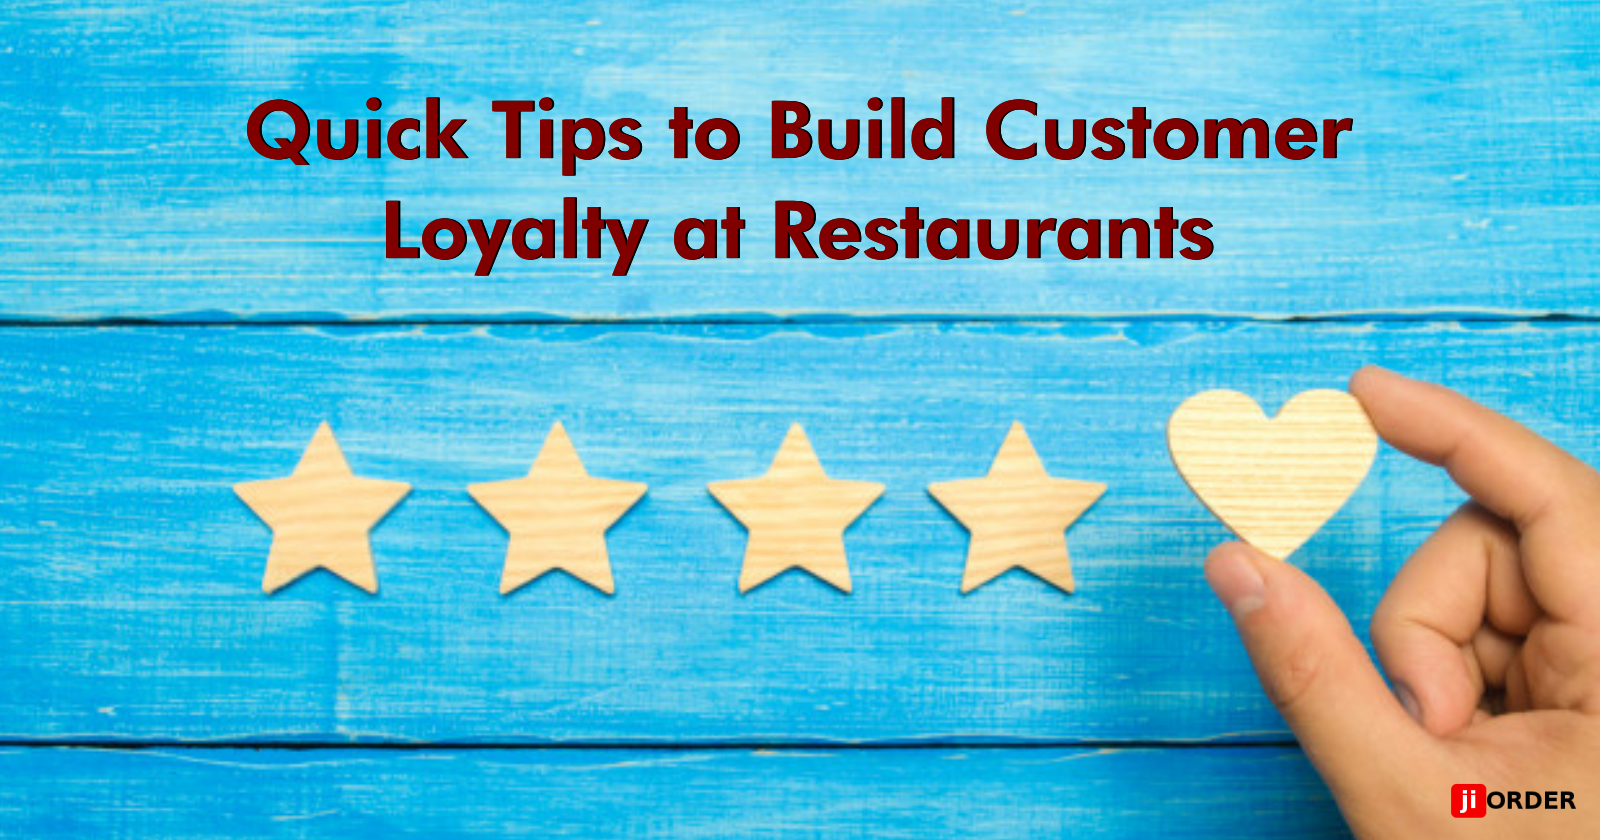 Improve Your Customer Loyalty With These Quick Tips